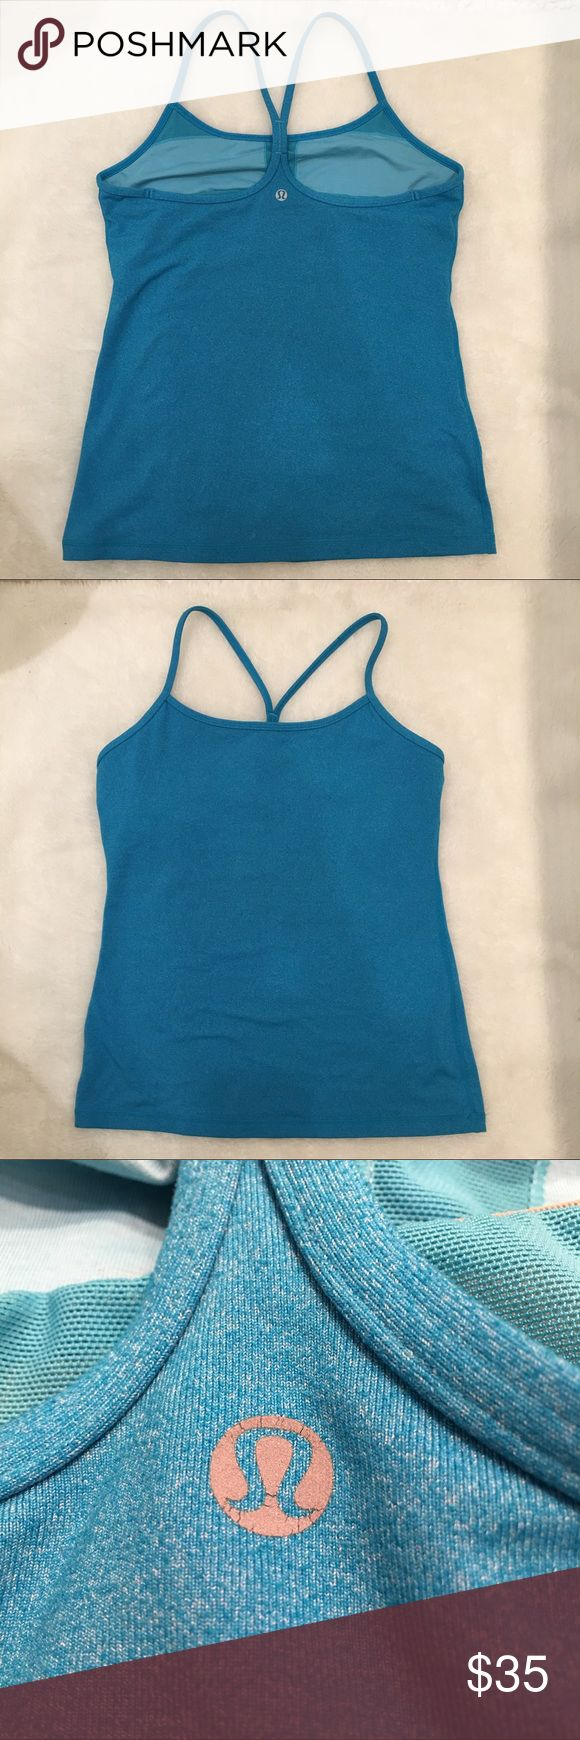 Lululemon Bright Blue Y Top size 10 Preowned authentic Lululemon Bright Blue Y Top size 10. Builtin bra, no pads. Signs of normal wear. Please look at pictures for better reference. Happy shopping! lululemon athletica Tops Tank Tops